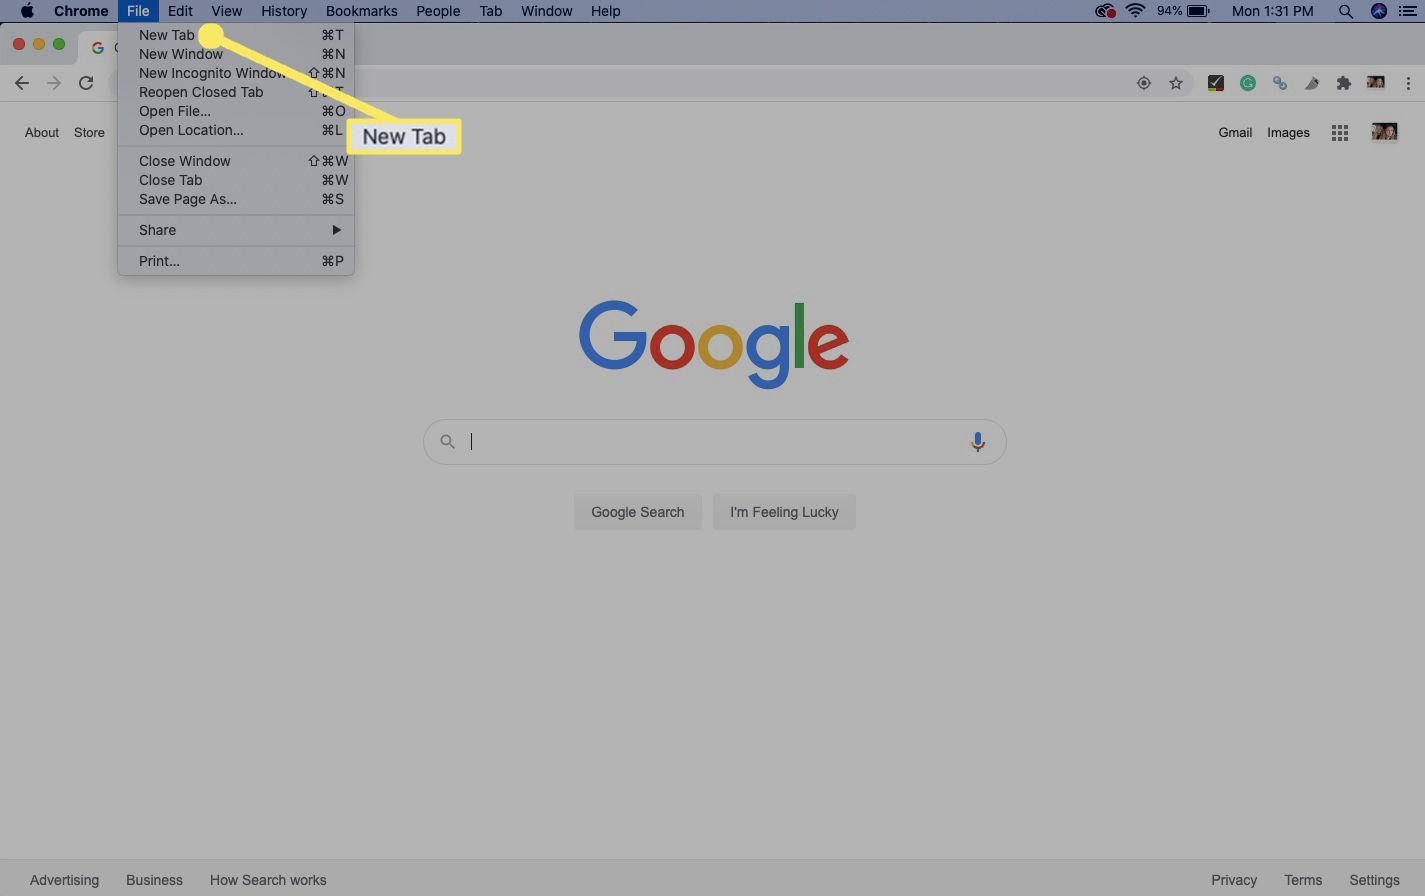 In Chrome, open a new tab by selecting File > New Tab.